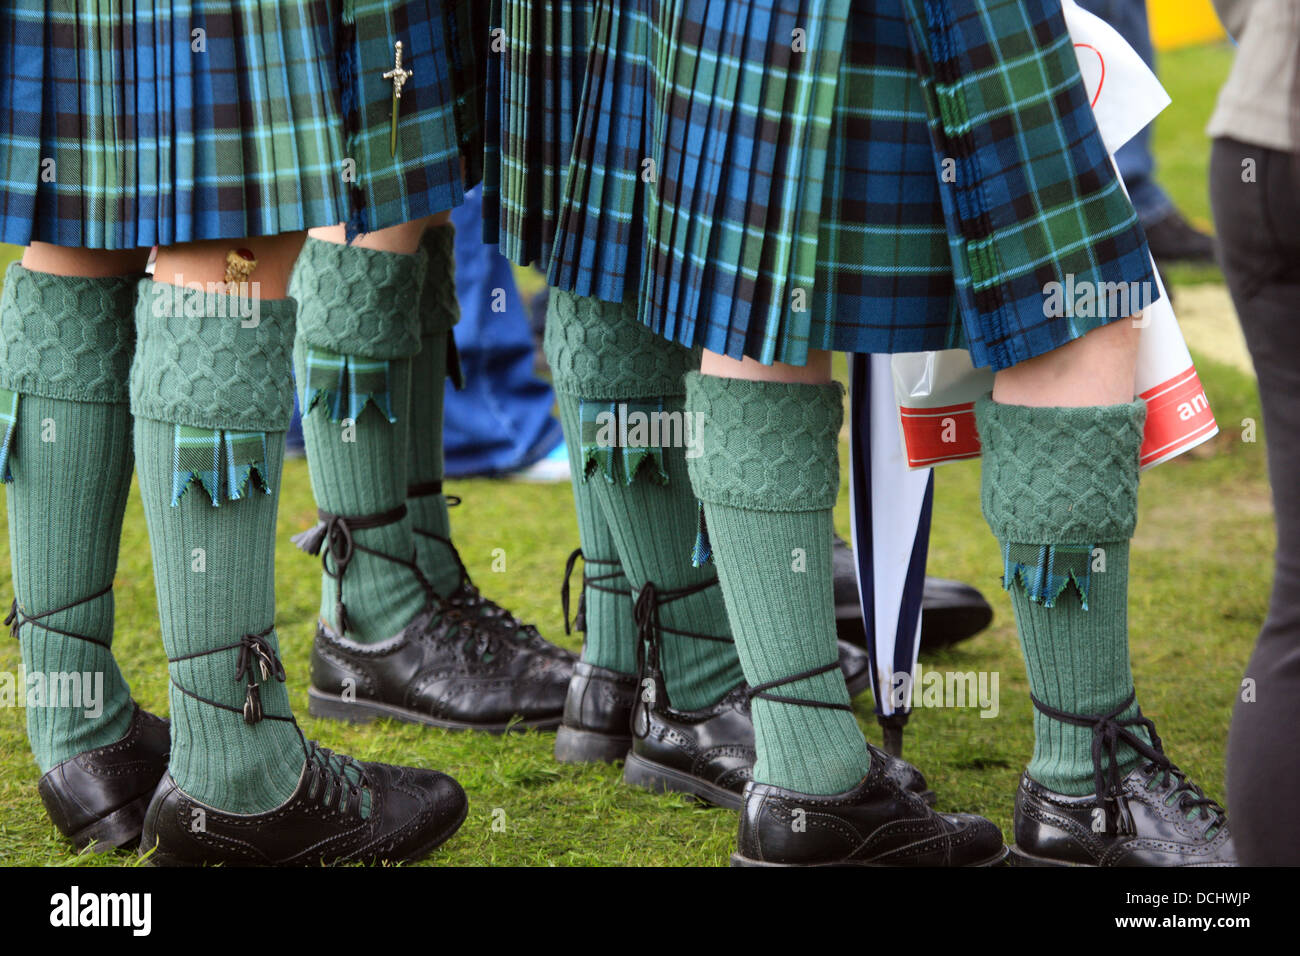 Scottish national dress - tartan kilts, highland dress shoes, socks with flashes at the World Pipe Band Championships - Stock Image